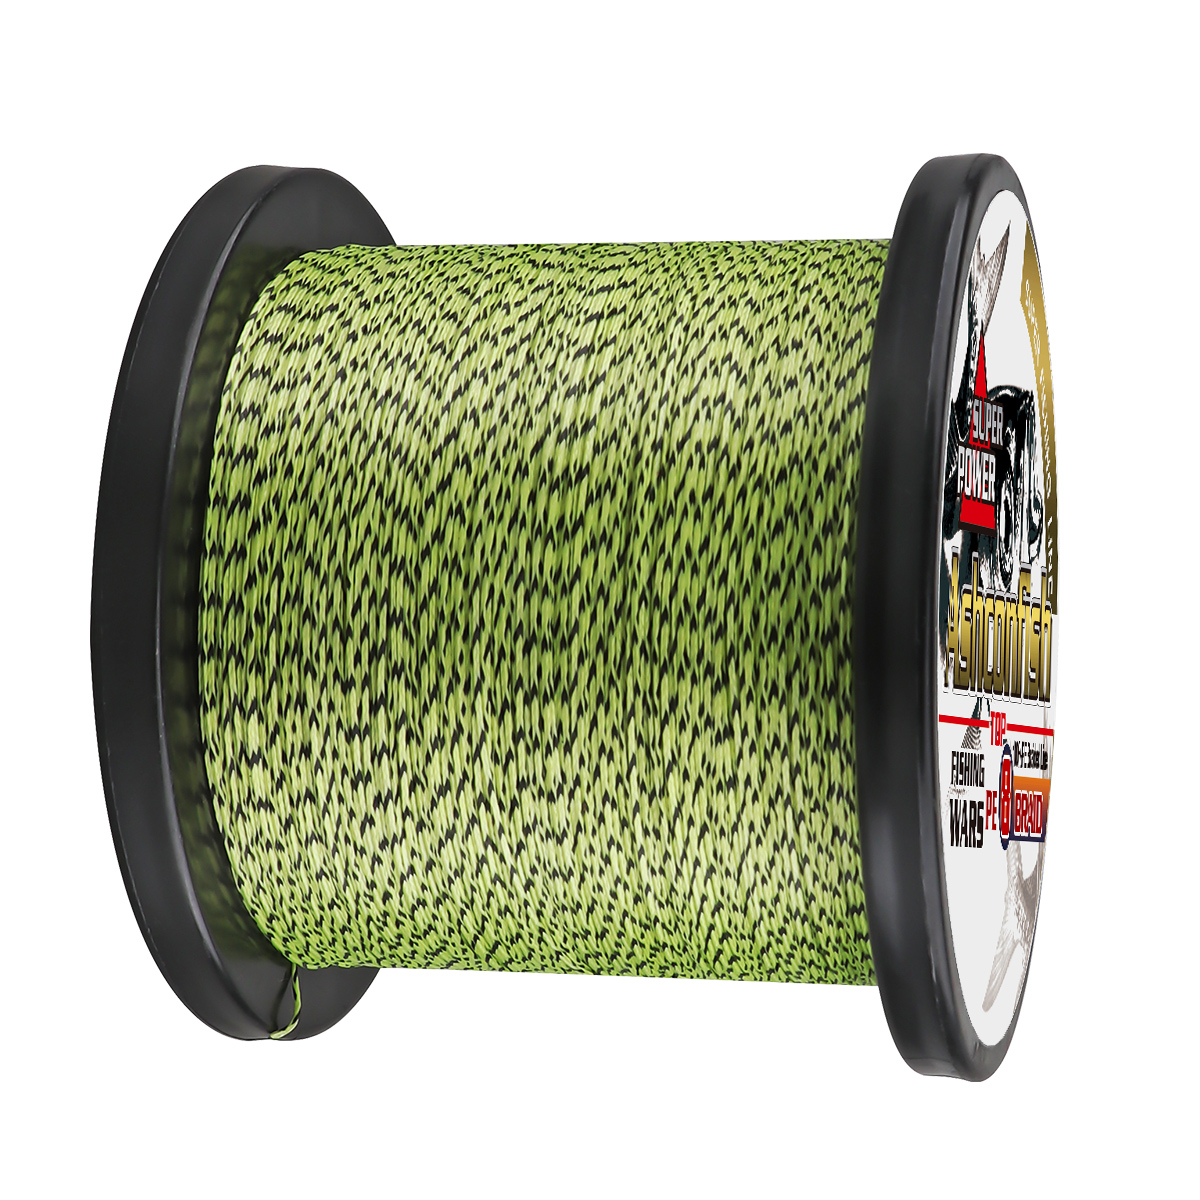 Fishing line 1500m 2000M super pe 8 Strands spot line mix color braided line fishing wire strong cord 8 300LBS 0.12  0.8 1.0mm-in Fishing Lines from Sports & Entertainment